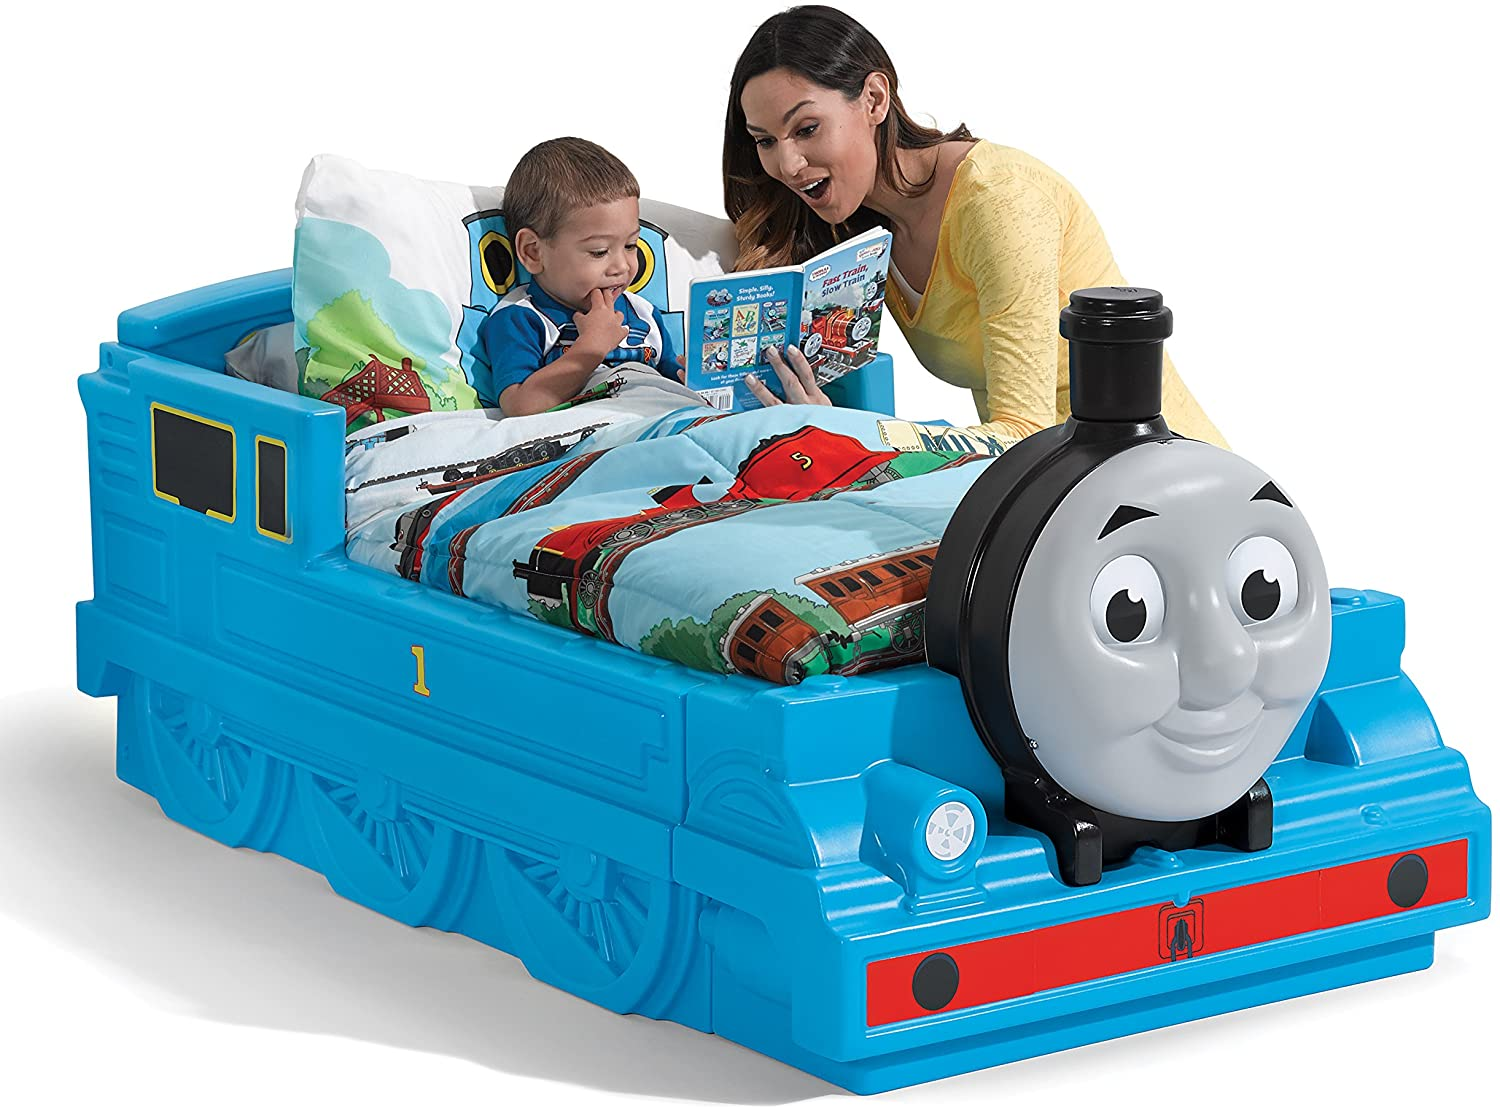 Step2 Thomas the Tank Engine Toddler Bed Review - The Best Branded Kids Bed 1